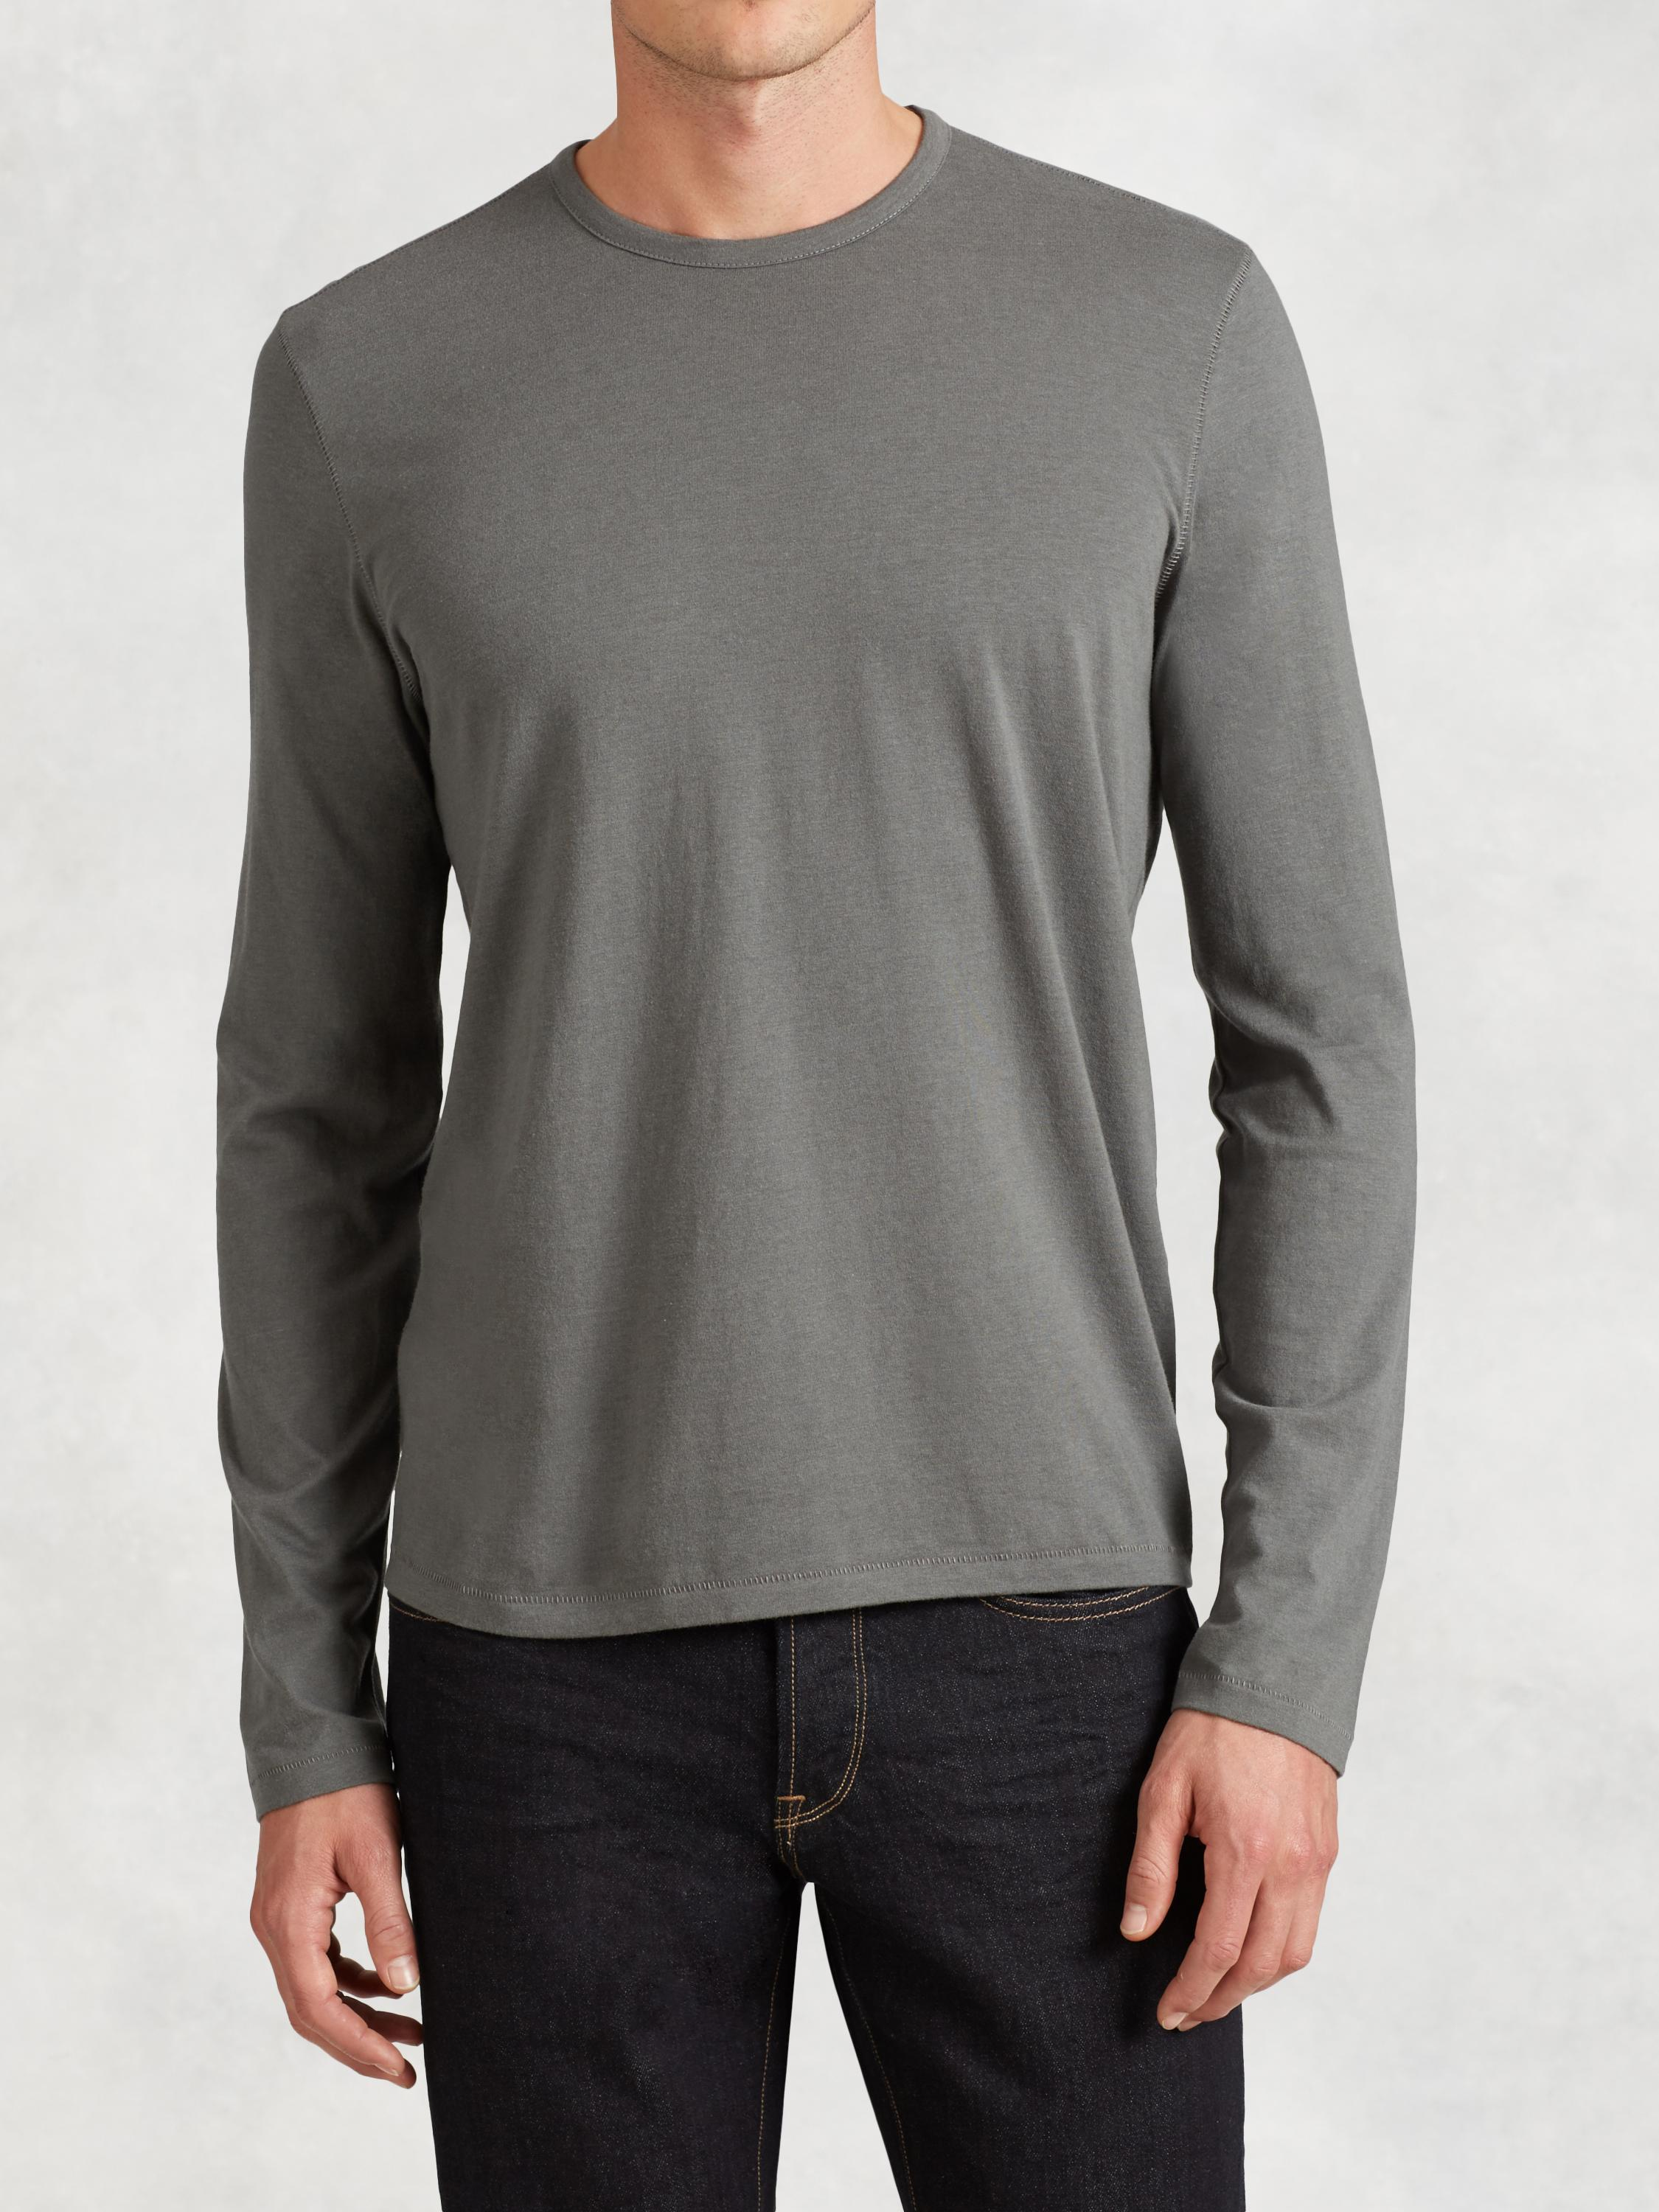 Cotton Modal Crewneck